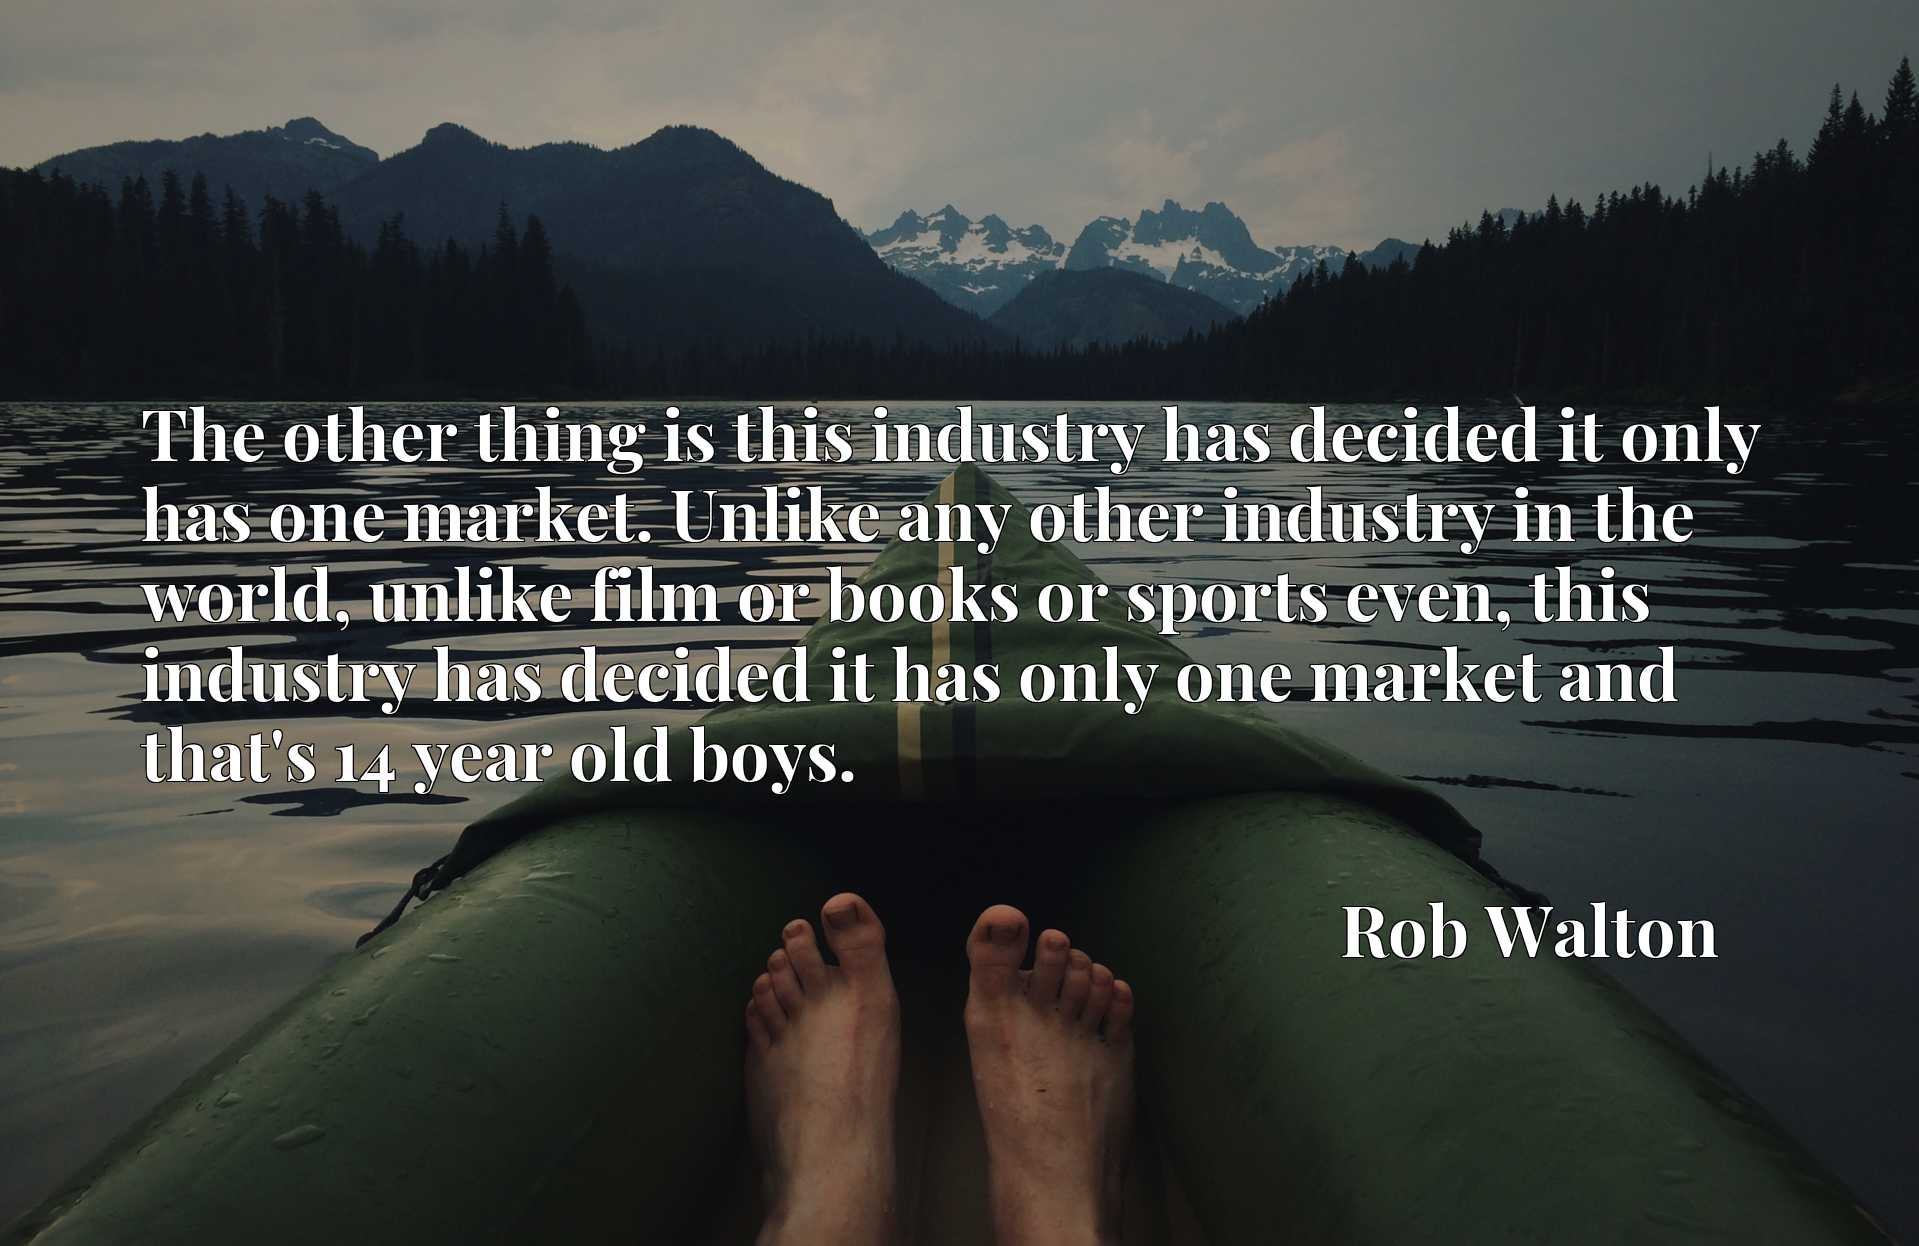 The other thing is this industry has decided it only has one market. Unlike any other industry in the world, unlike film or books or sports even, this industry has decided it has only one market and that's 14 year old boys.